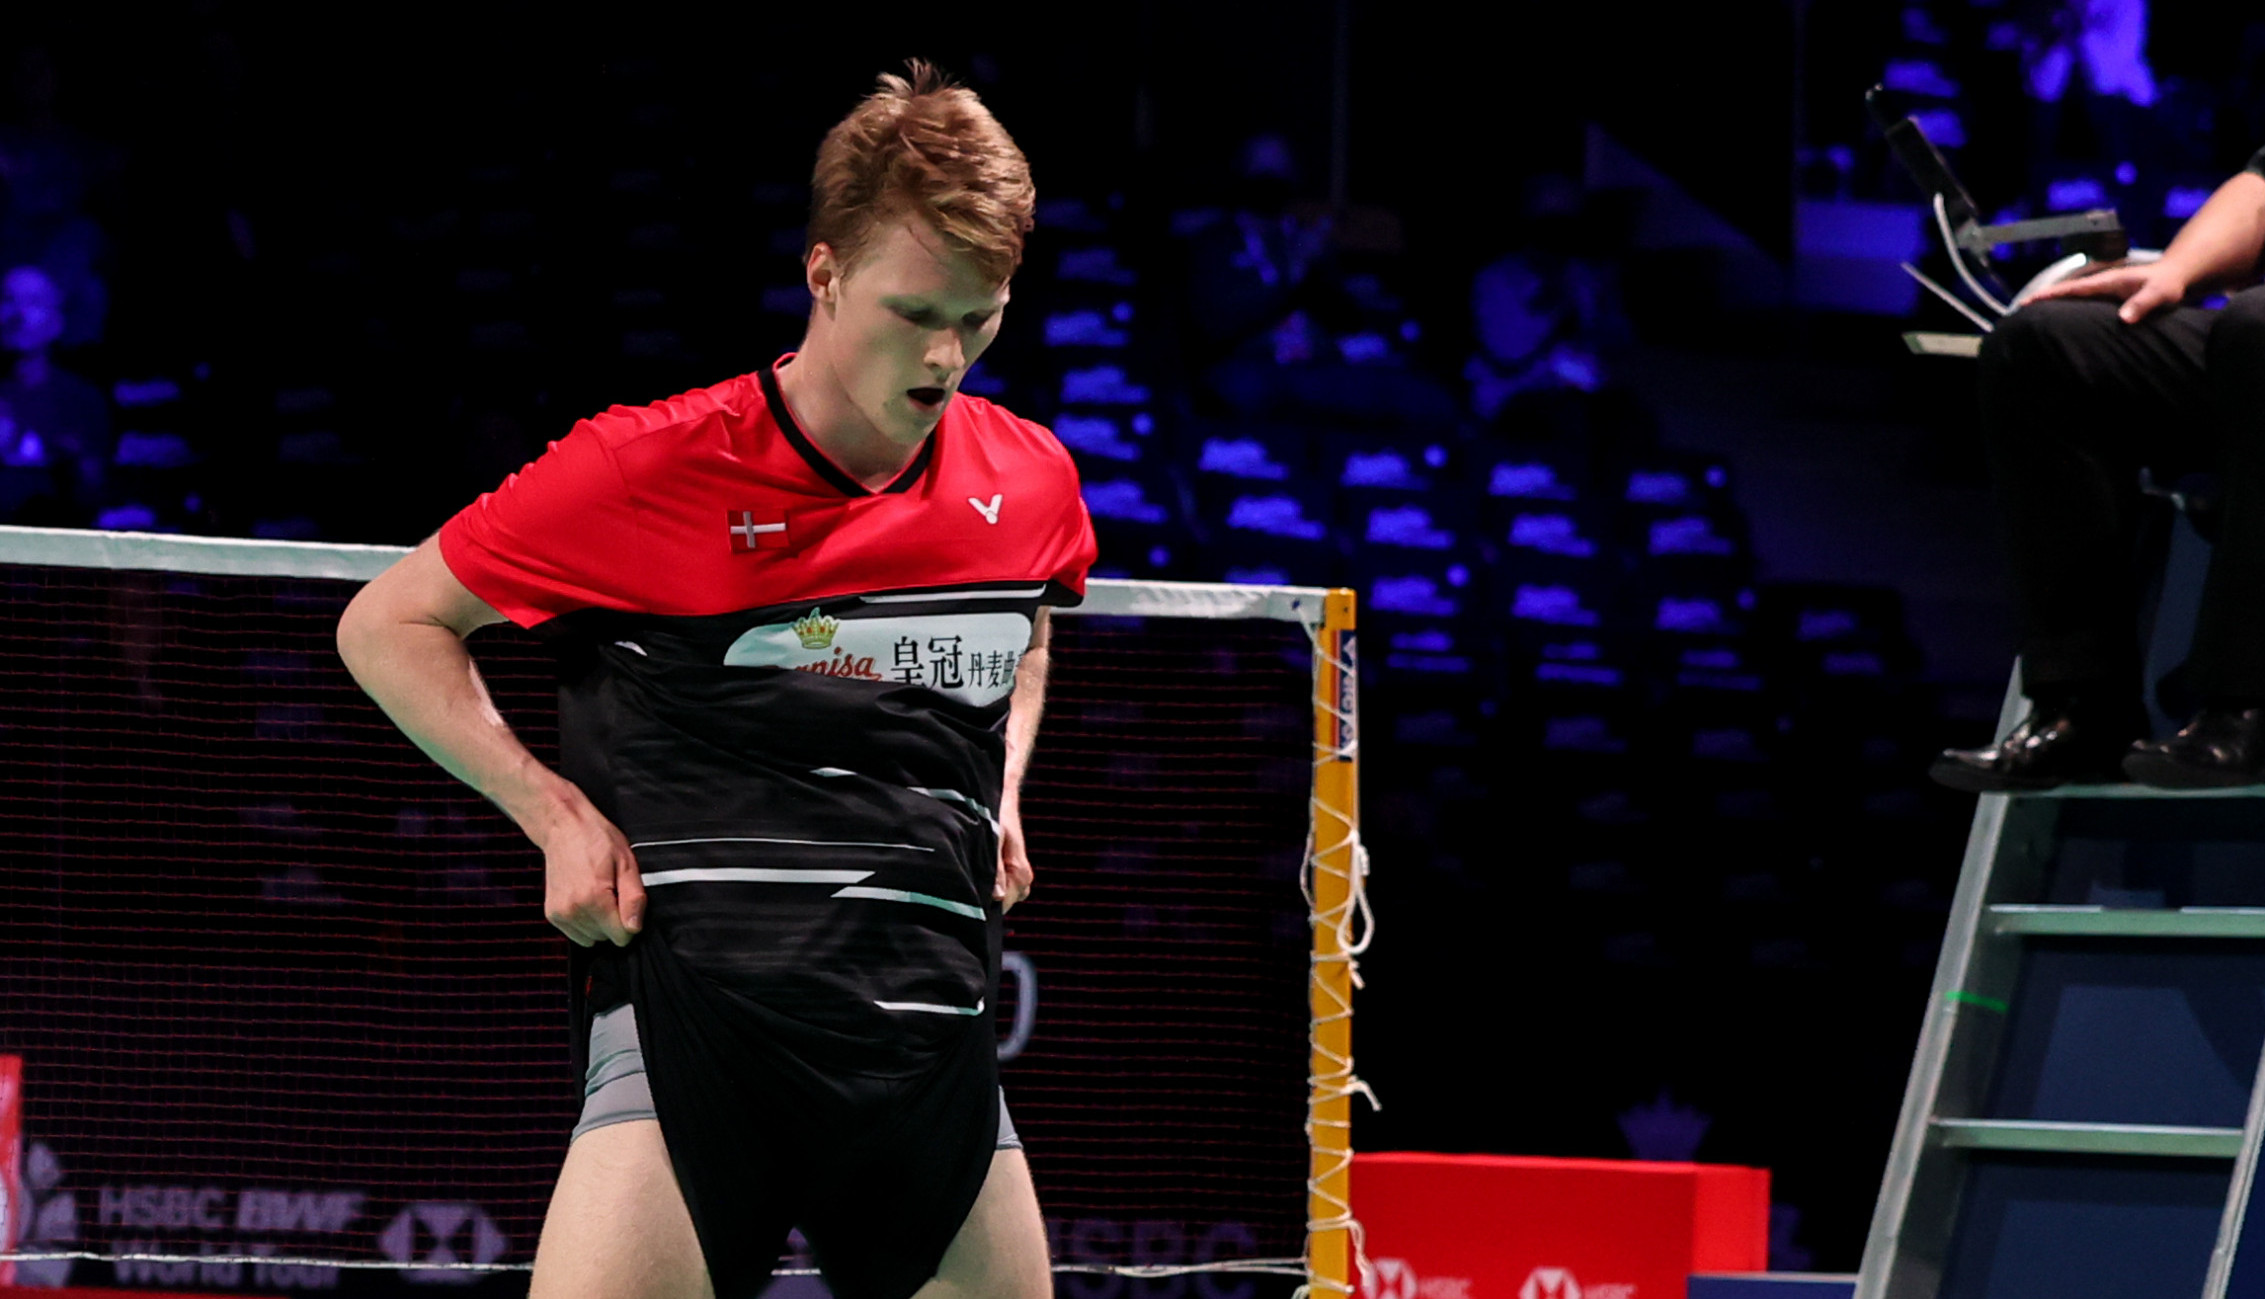 Video: Why Antonsen Did 'The Cowboy'